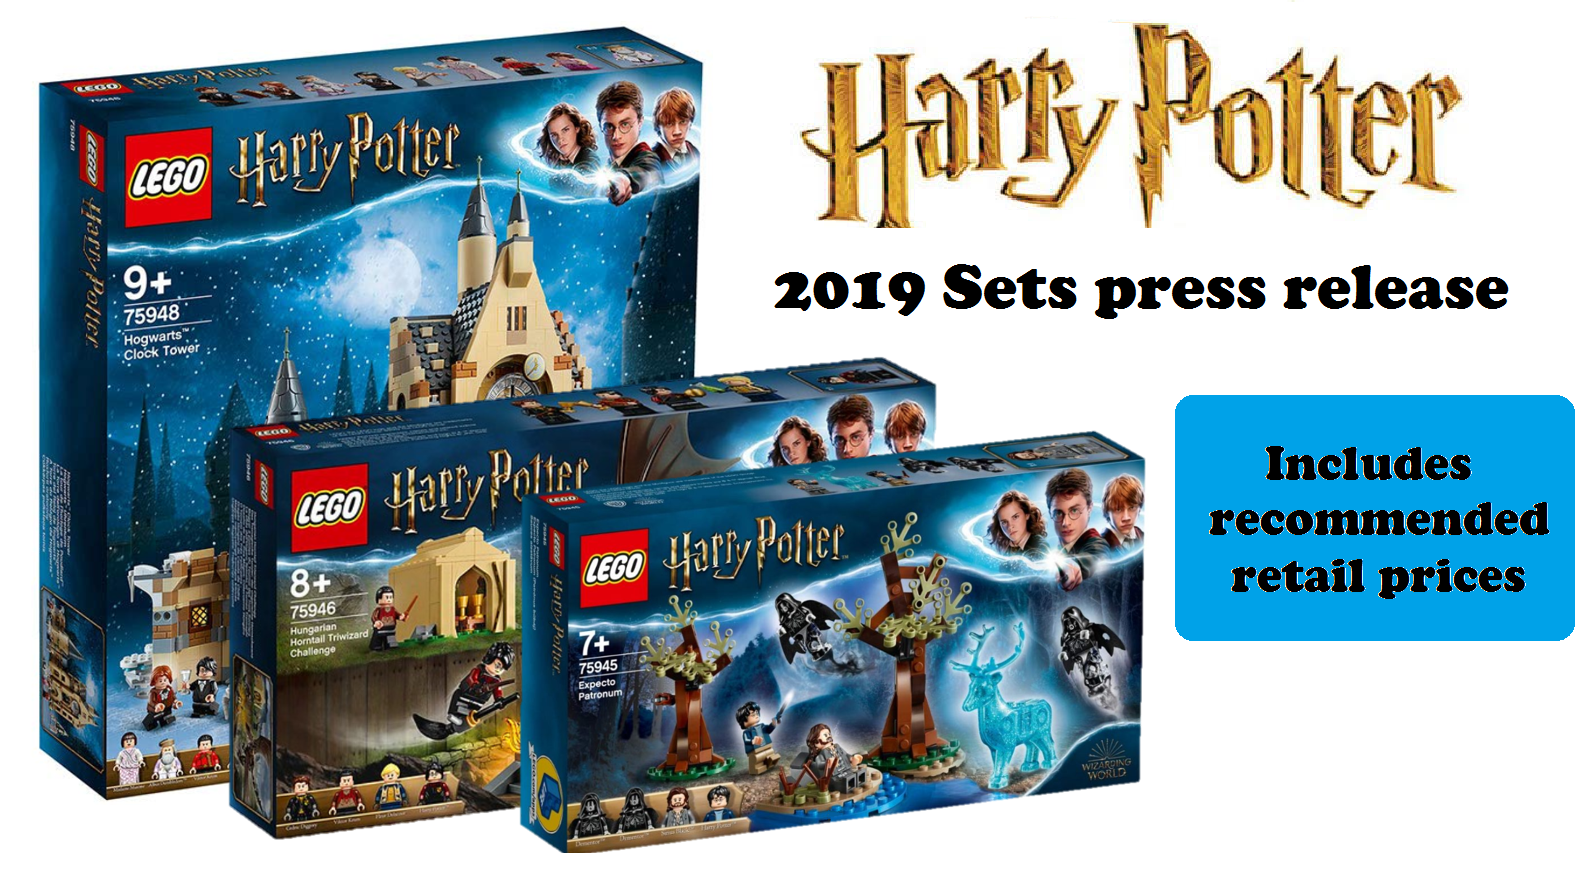 2019 Harry Potter Sets Official Press Release